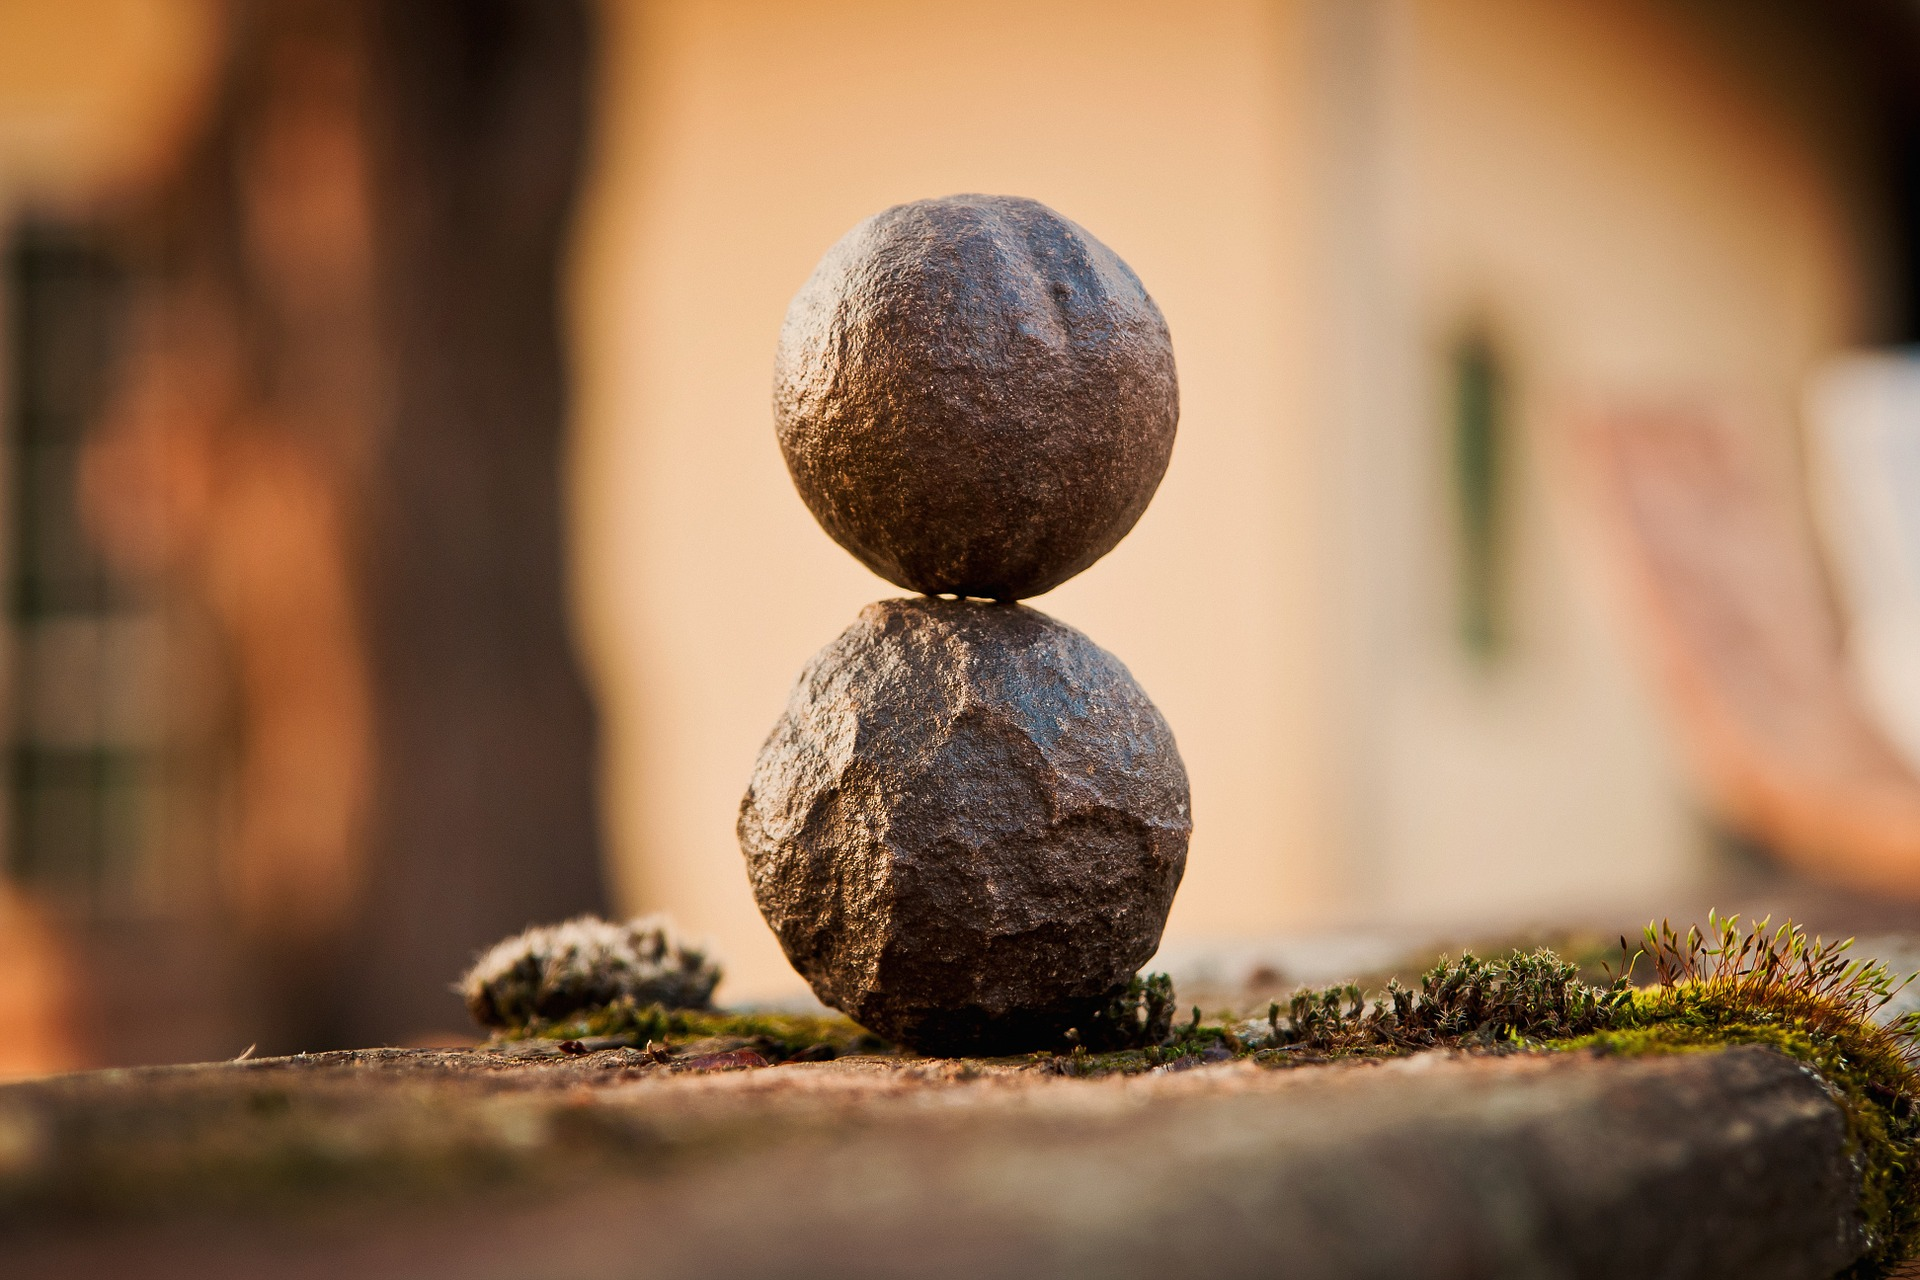 New Research Finds Mindfulness Reduces Worry